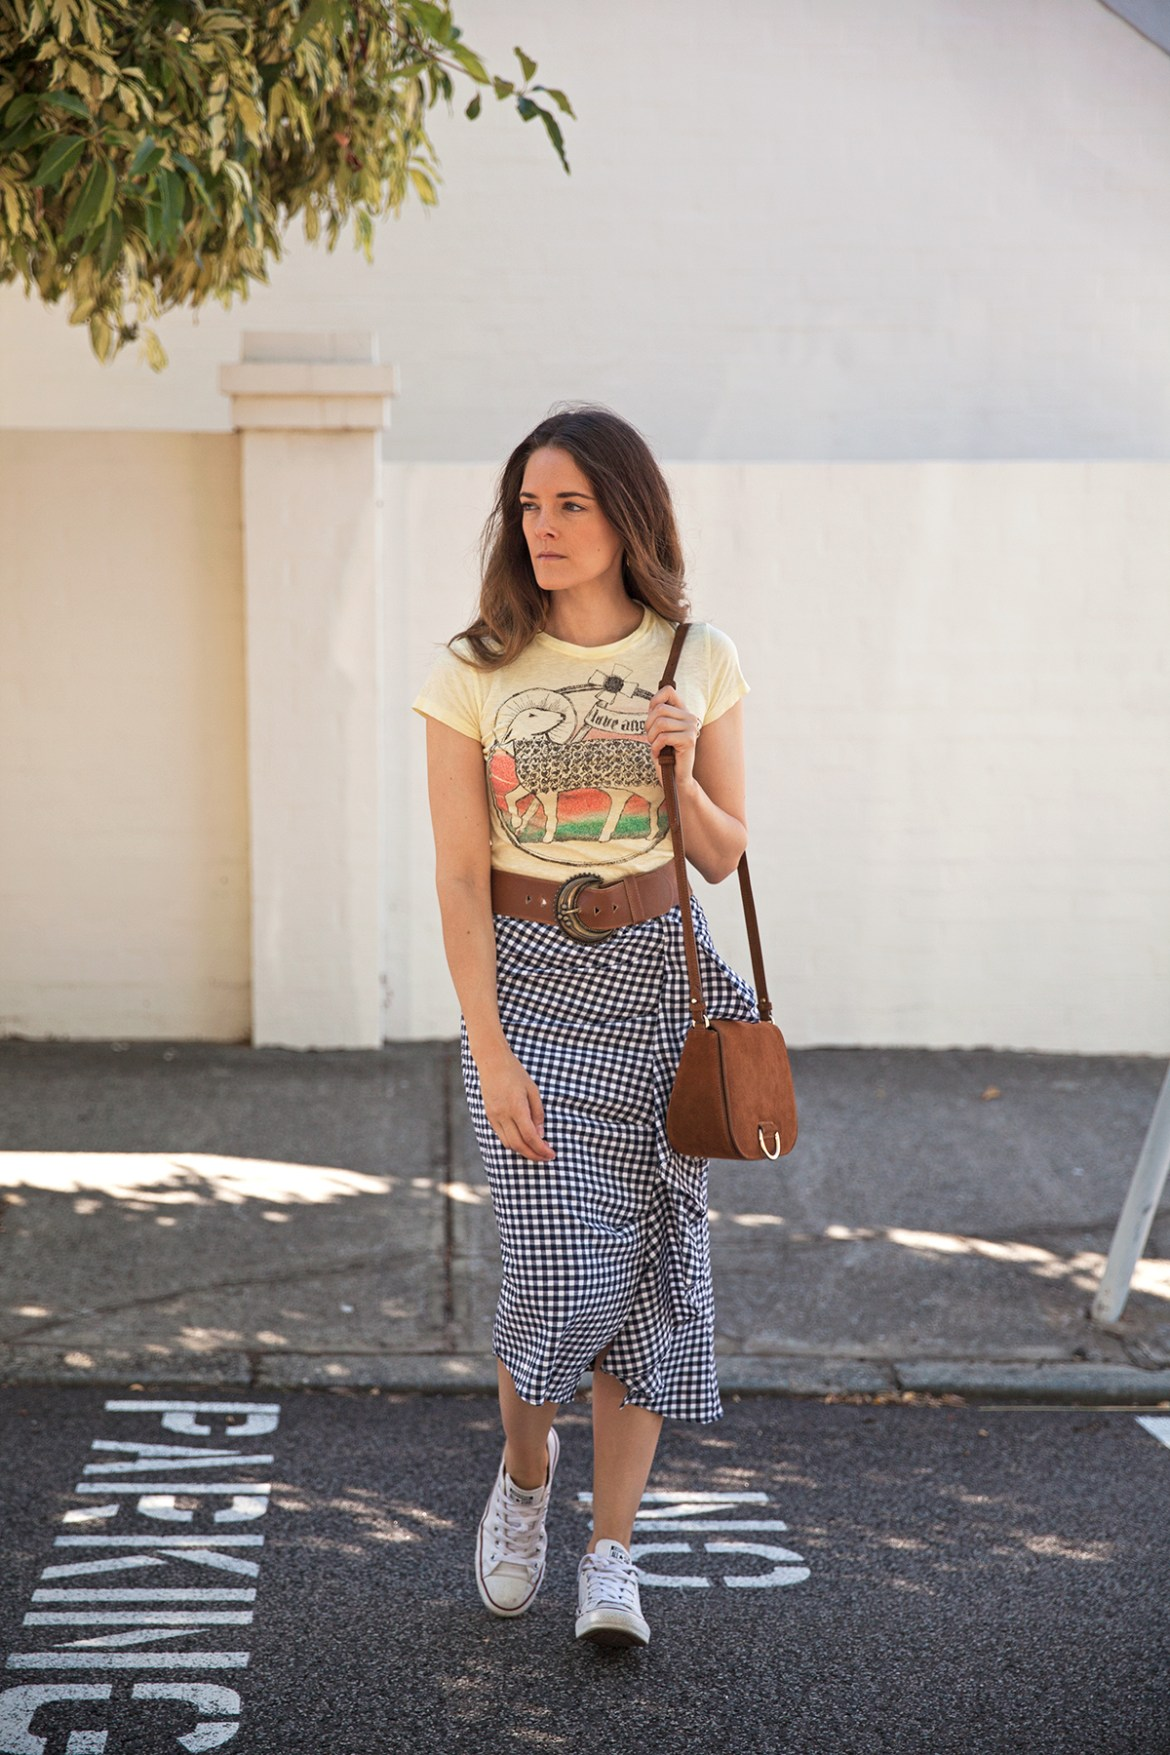 Inspiring Wit fashion blogger from Australia in Topshop gingham ruffle skirt for spring 2017 and suede Little Liffner bag statement belt